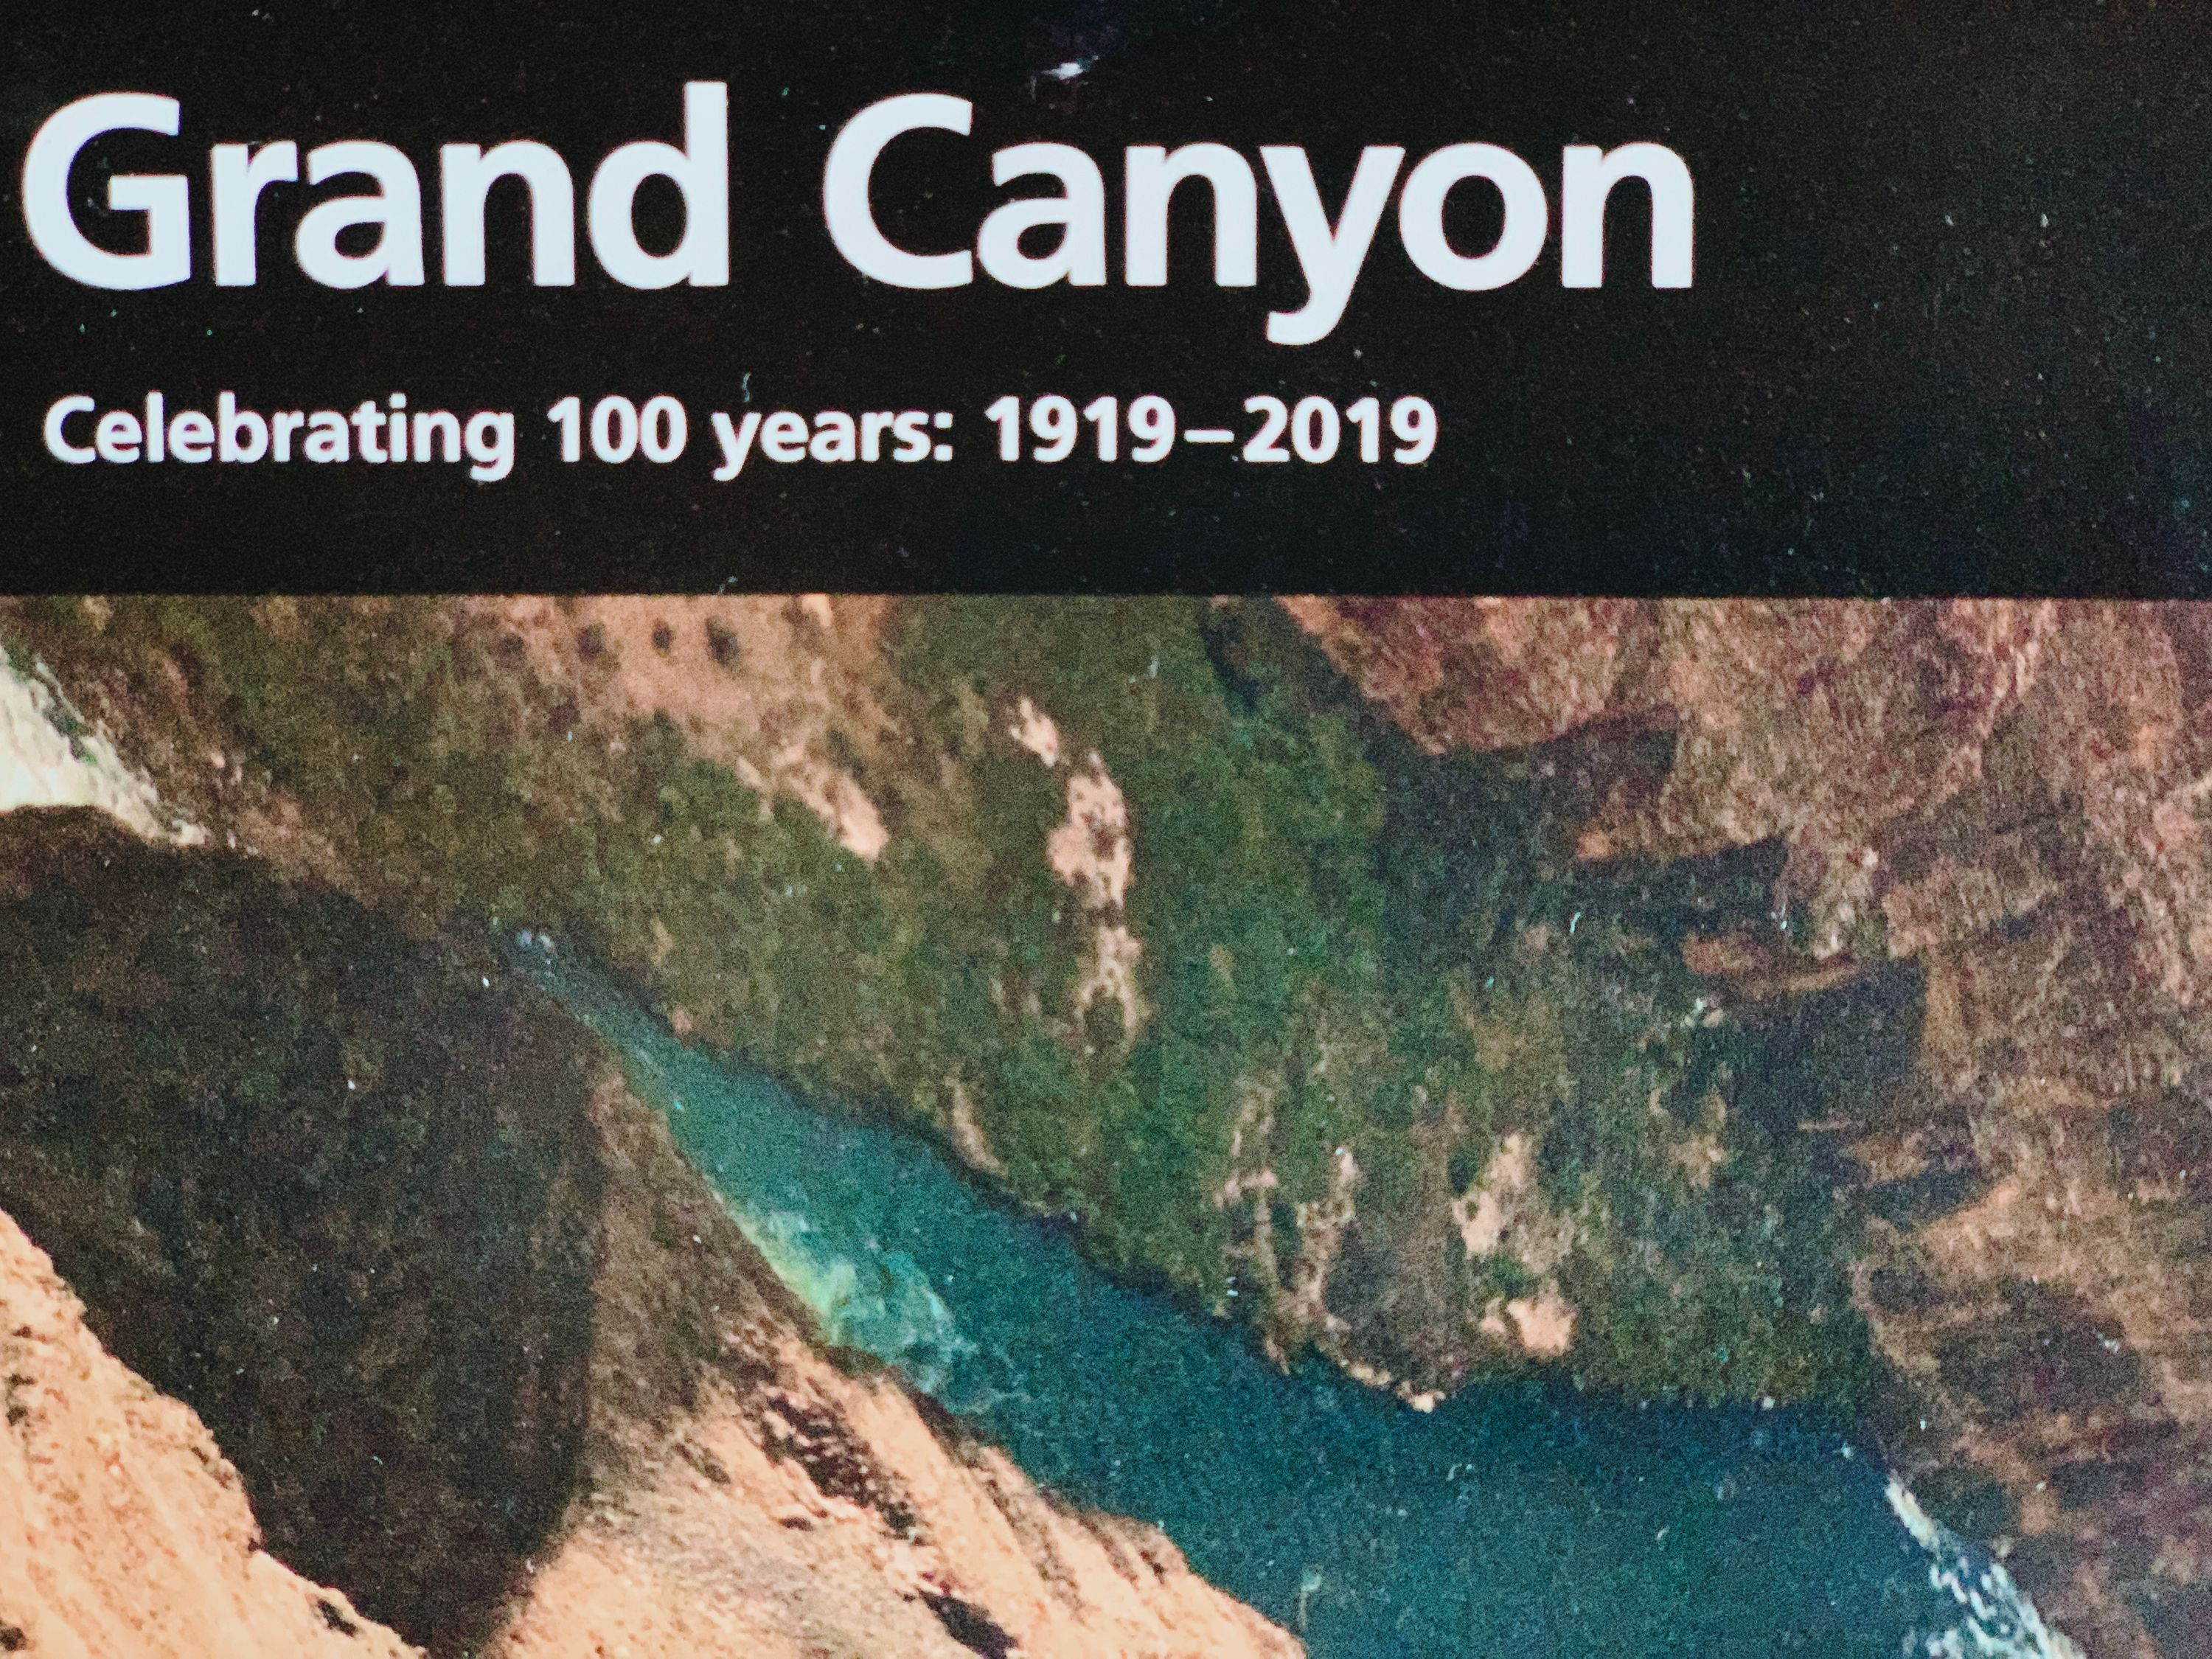 The Grand Canyon is celebrating 100 years in 2019